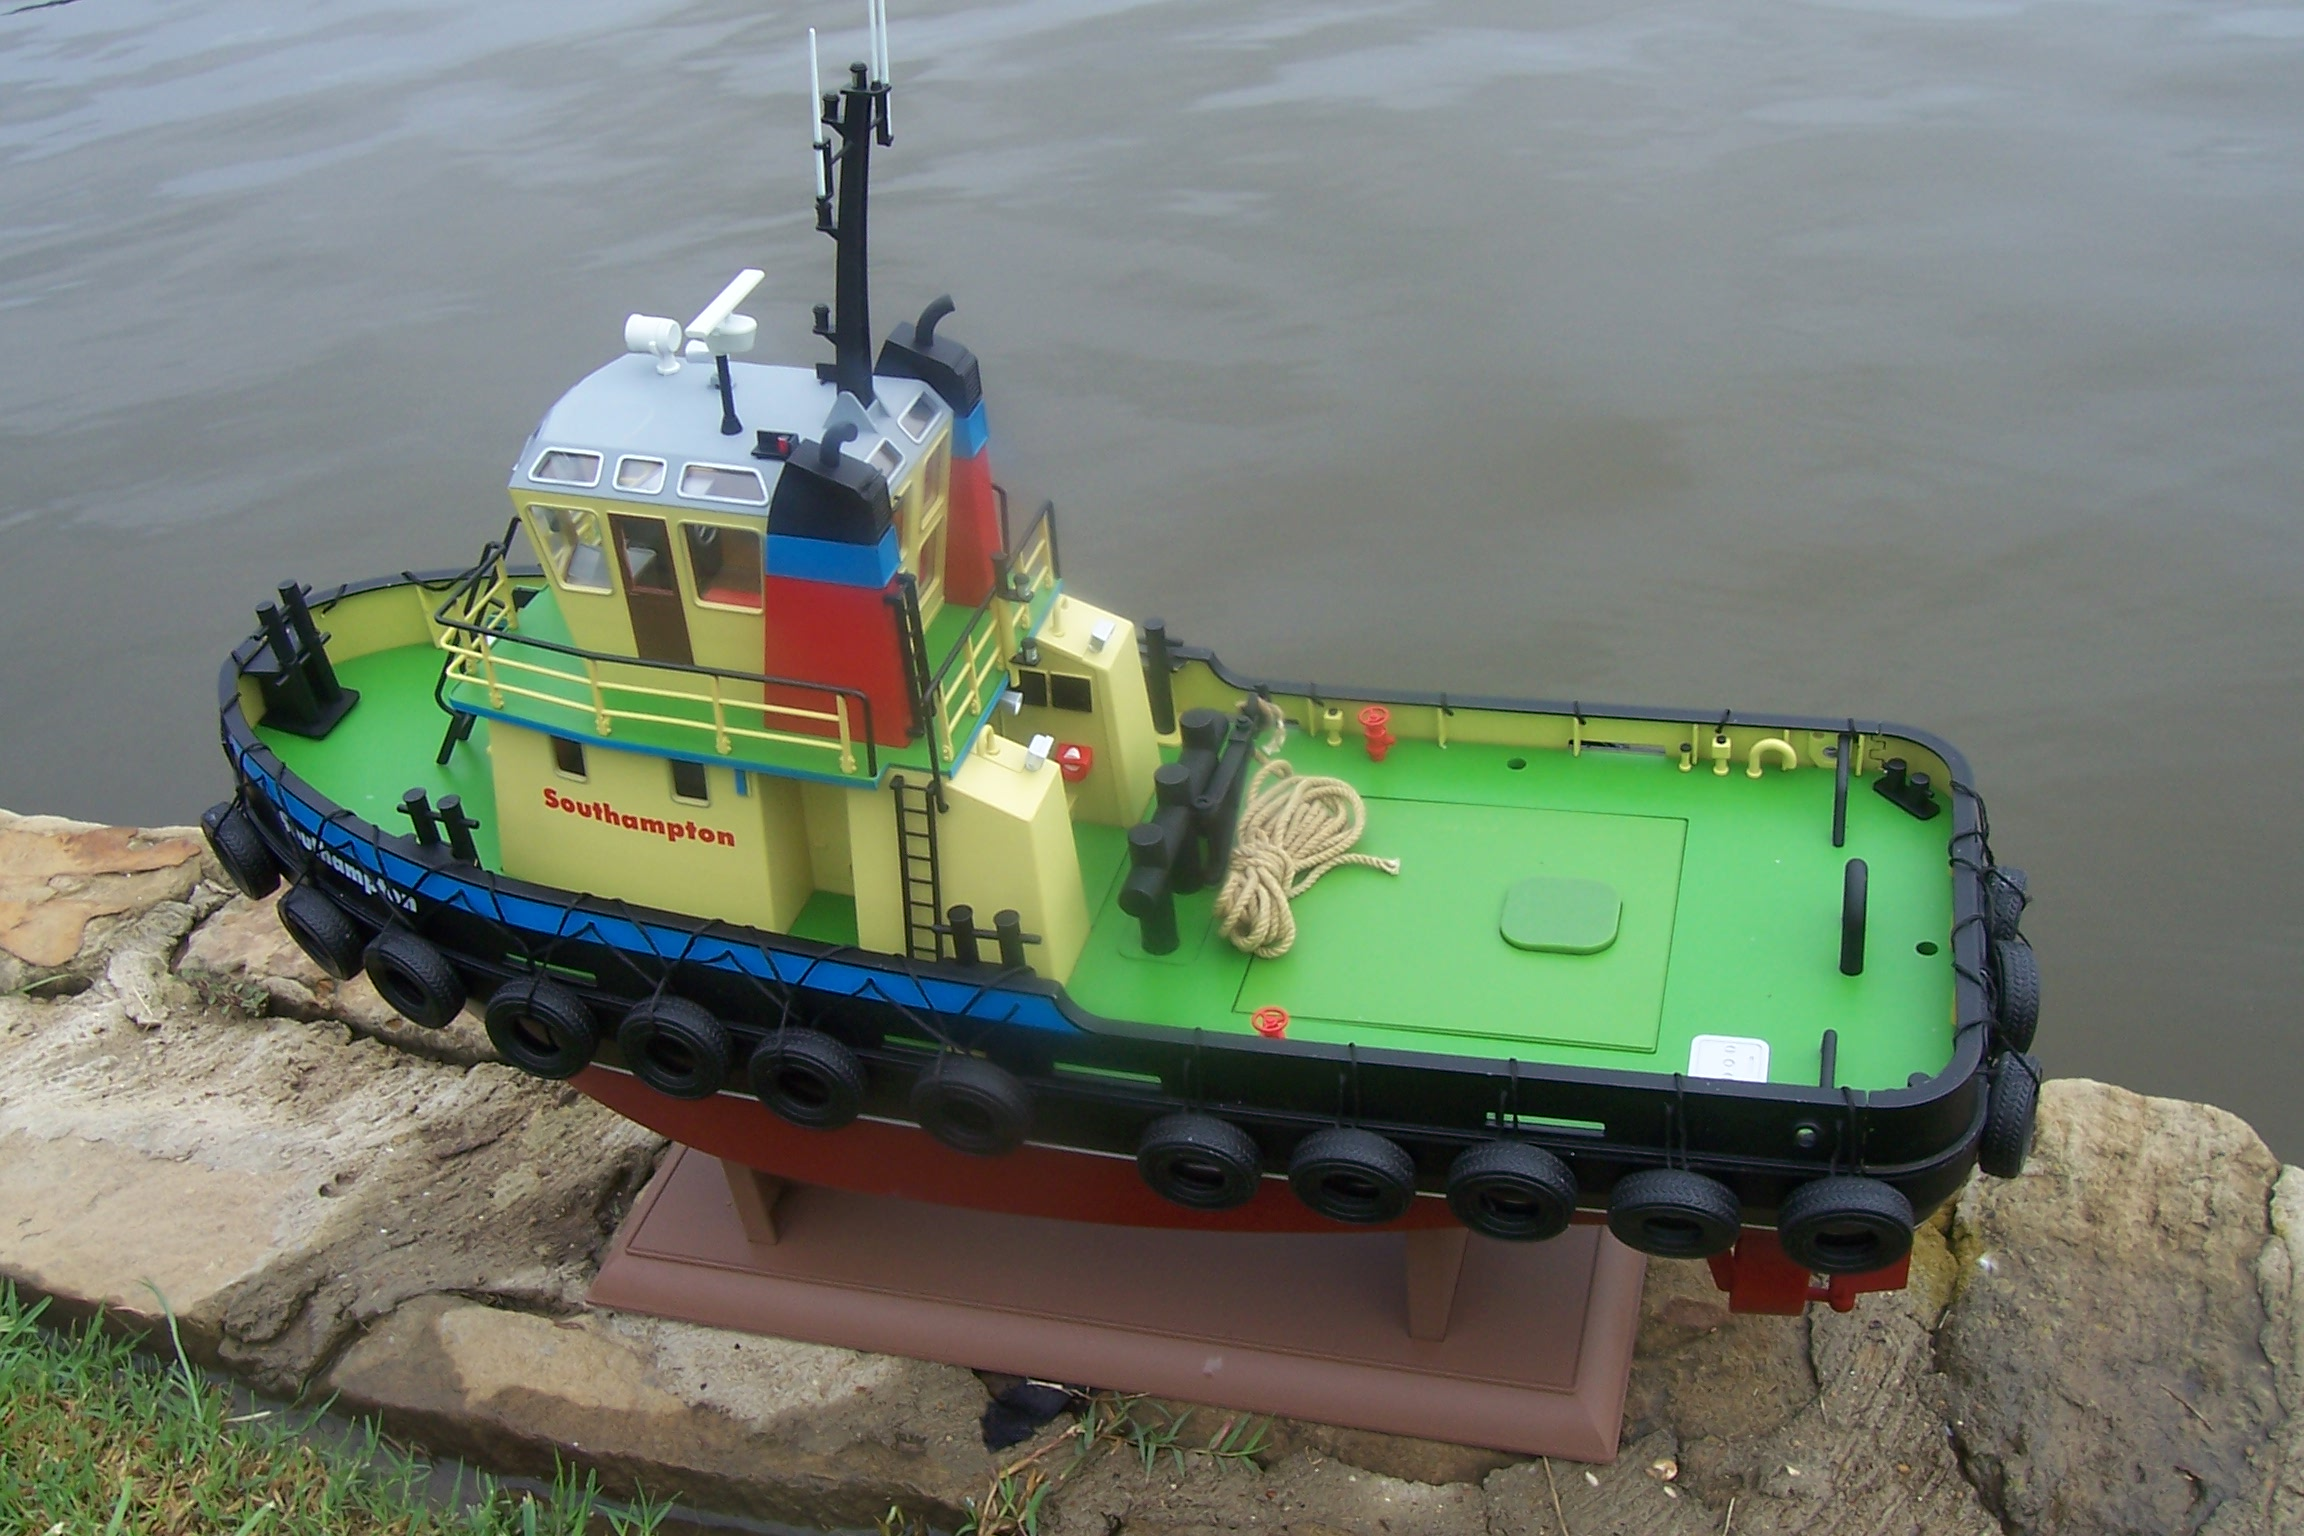 Rc Tug Boats For Sale submited images.